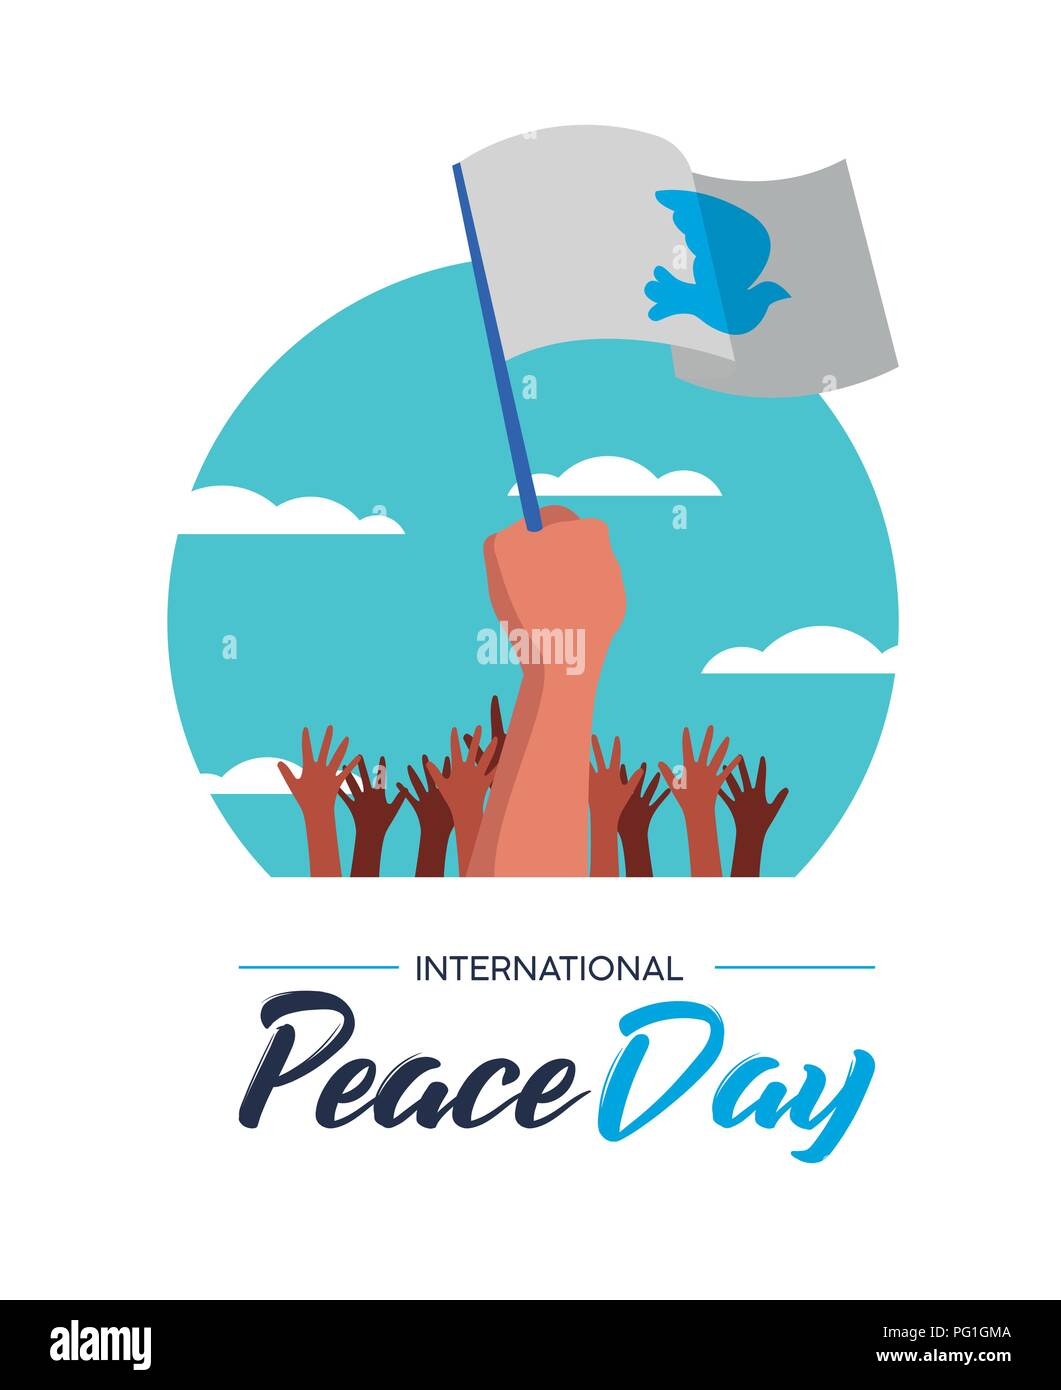 International Peace Day illustration, world freedom celebration for everyone. Group of people hands with white flags and pigeon in special pacifist ev - Stock Image